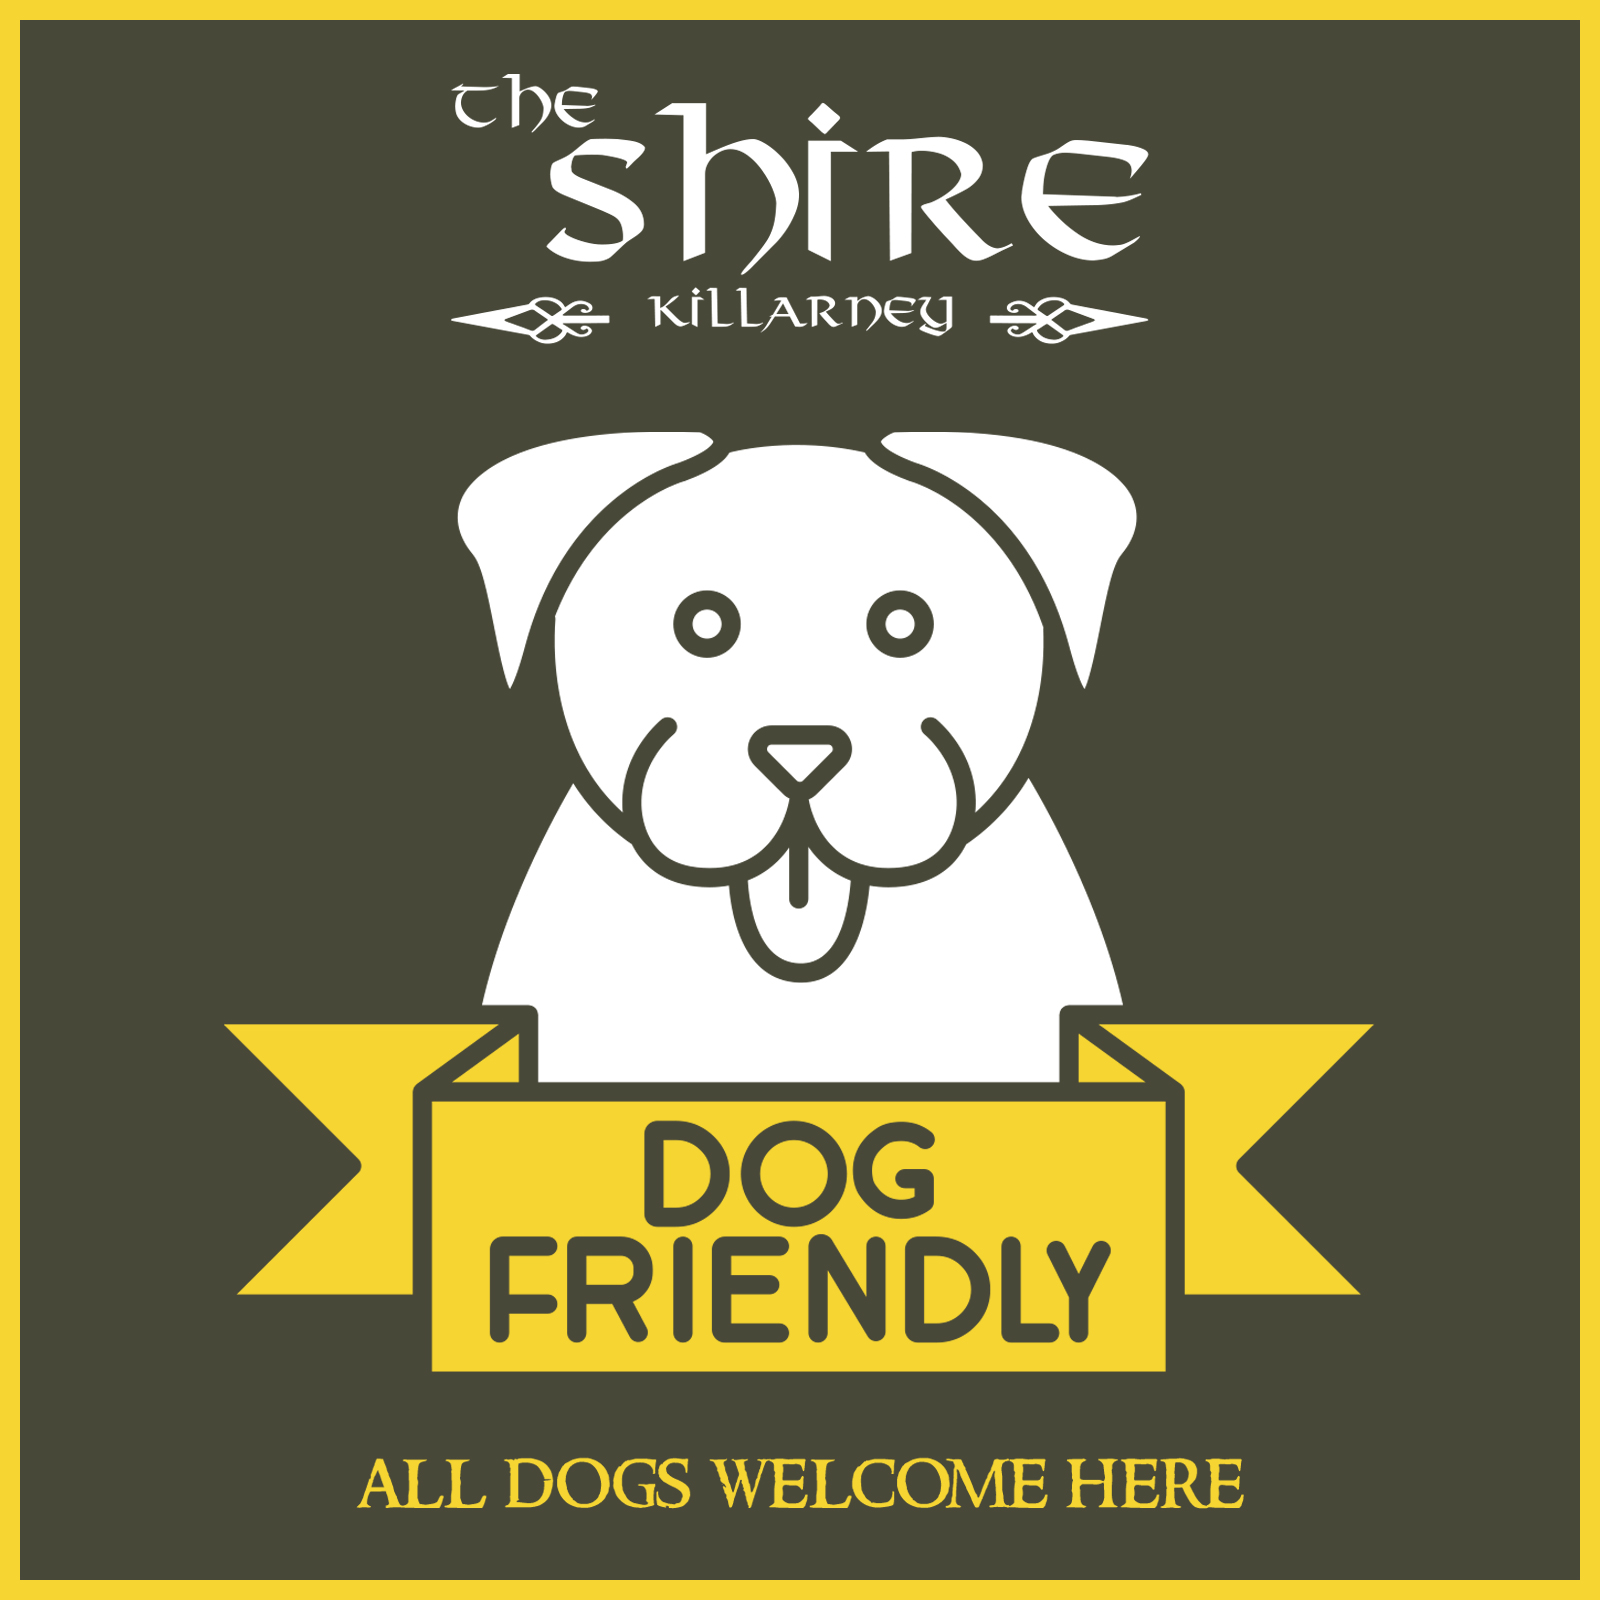 The Shire is a dog friendly cafe and bar/pub. All dogs are welcome here and we have designated areas for dogs with owners.